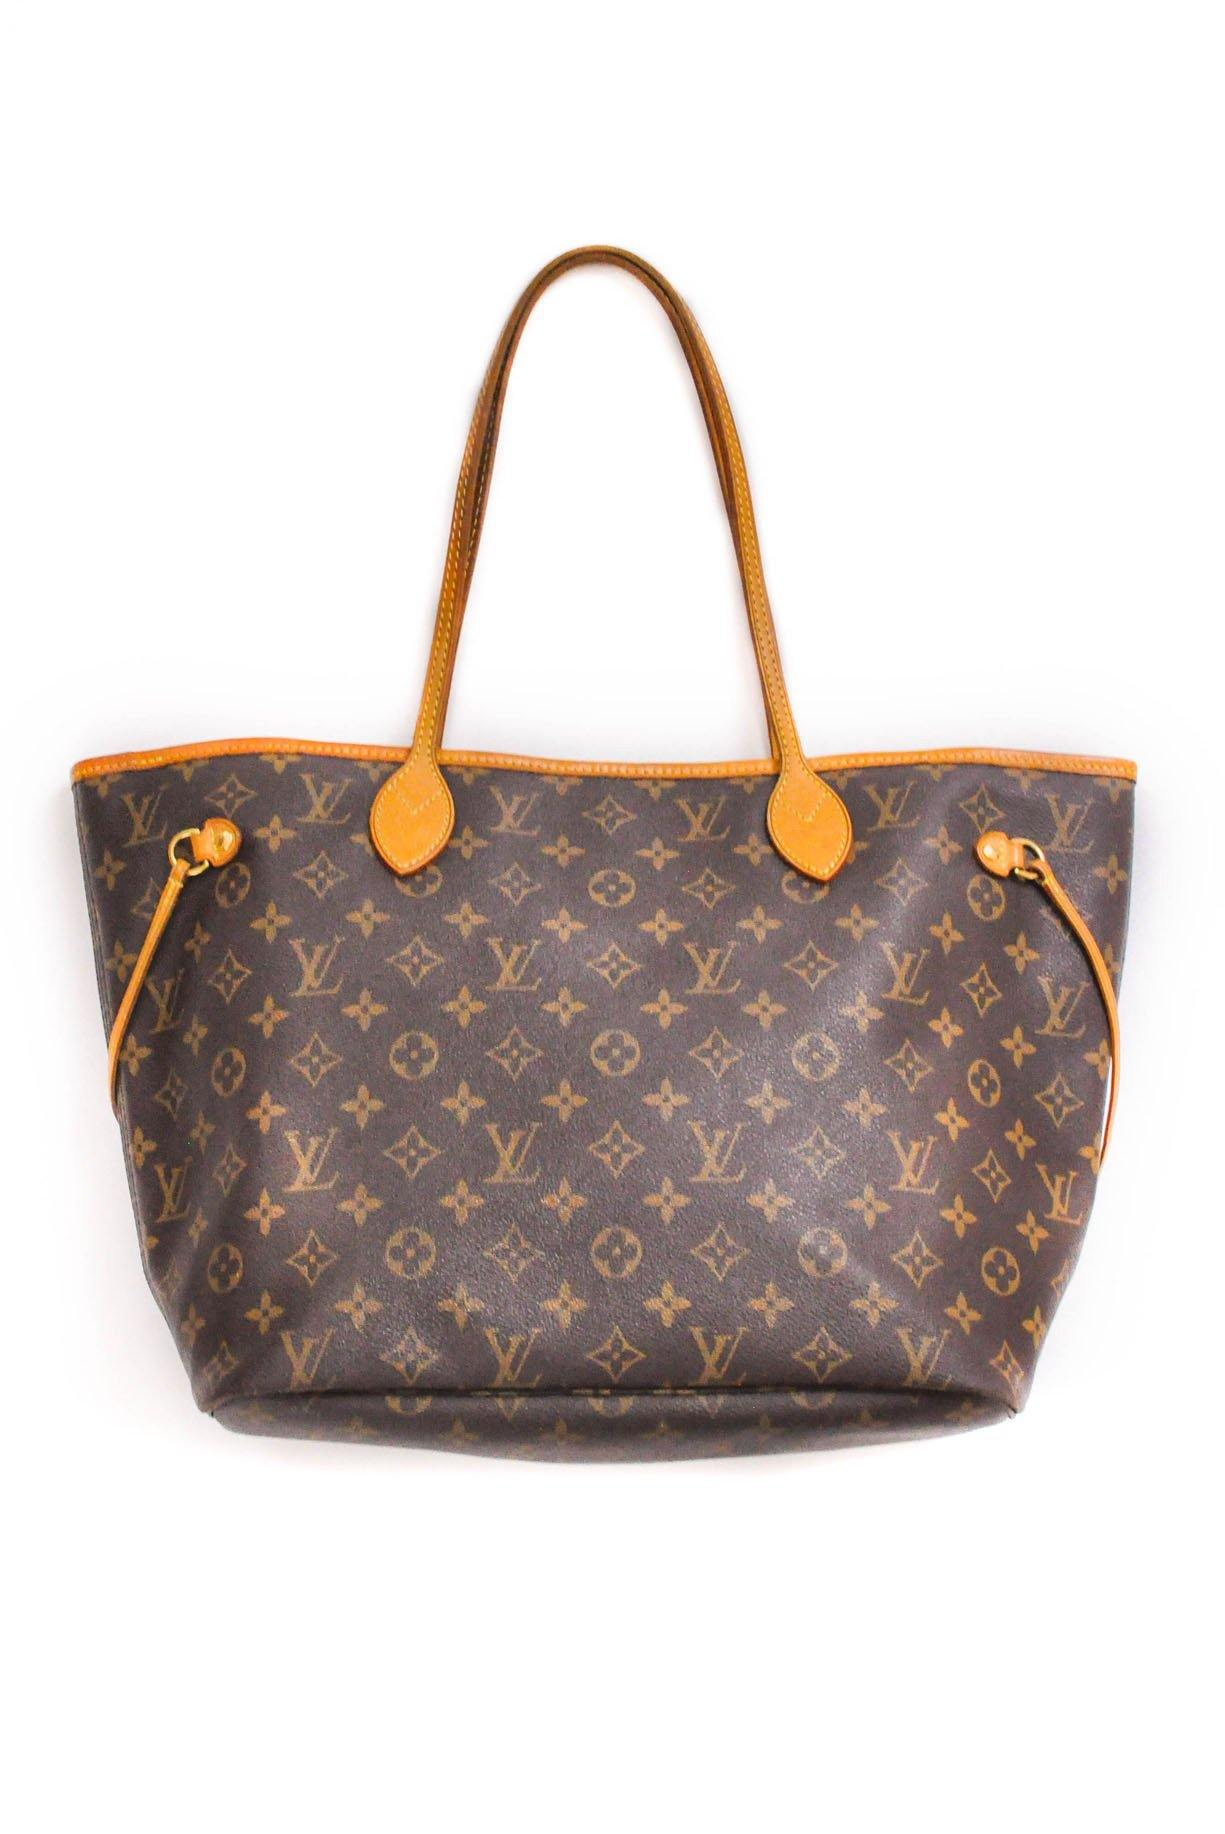 Louis Vuitton MM Tote